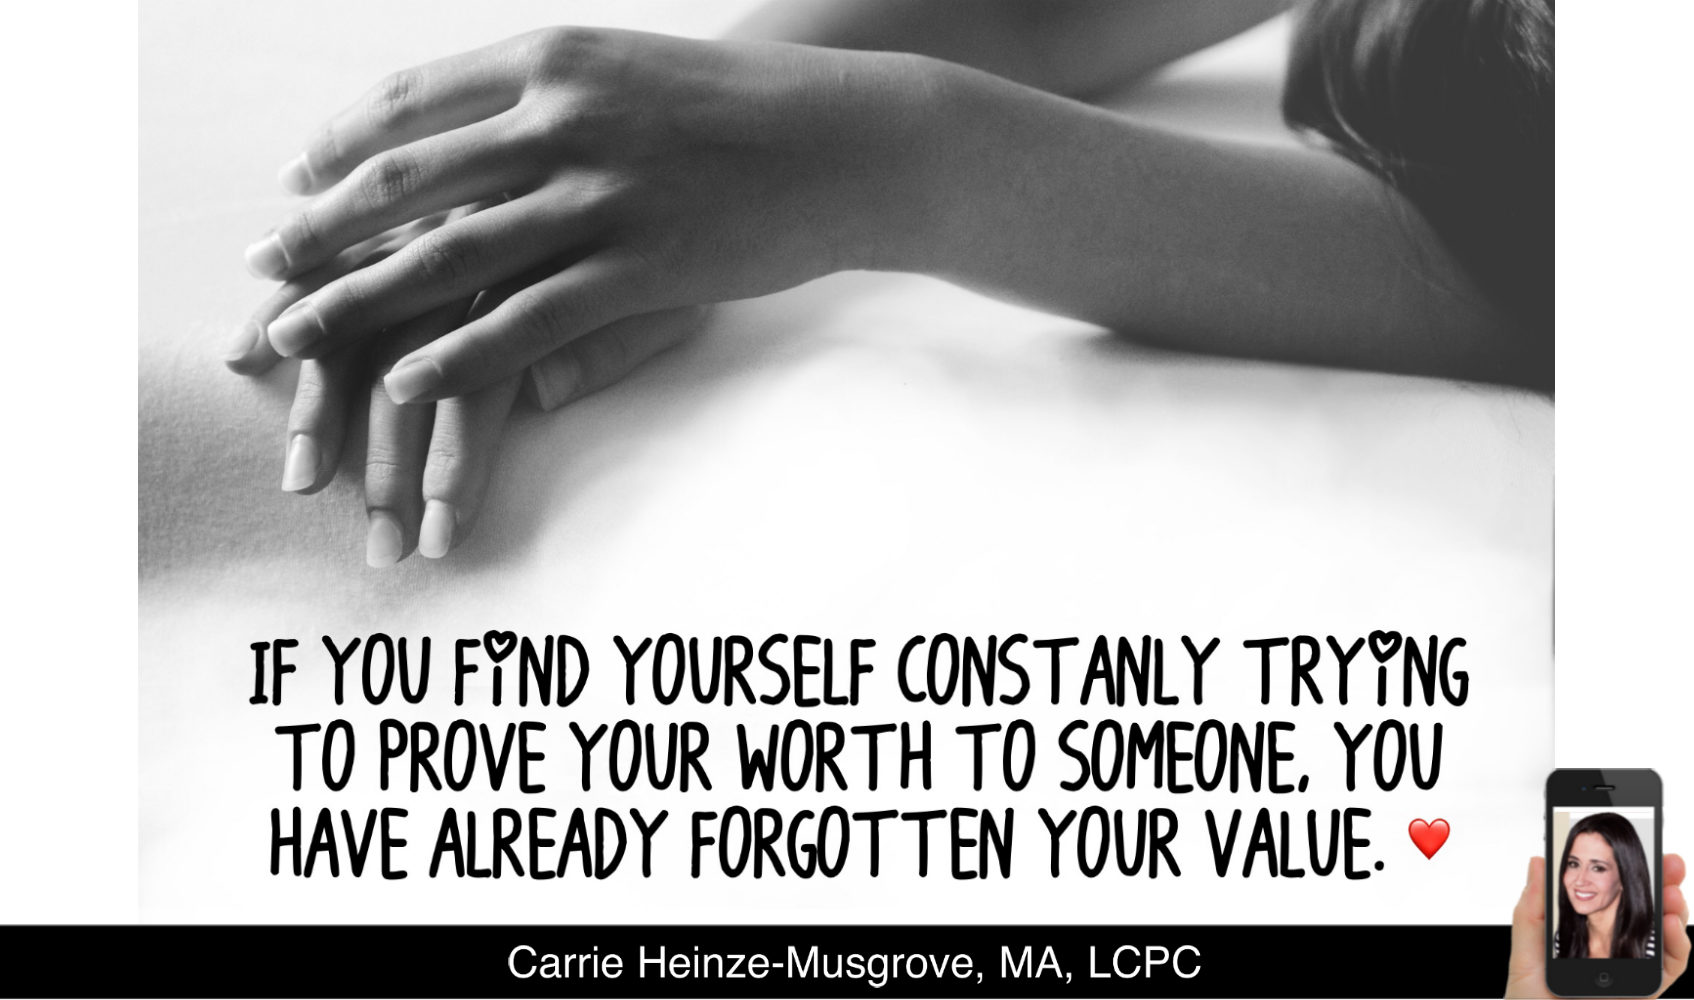 Still Trying to Prove Your Worth? Here's why you shouldn't.